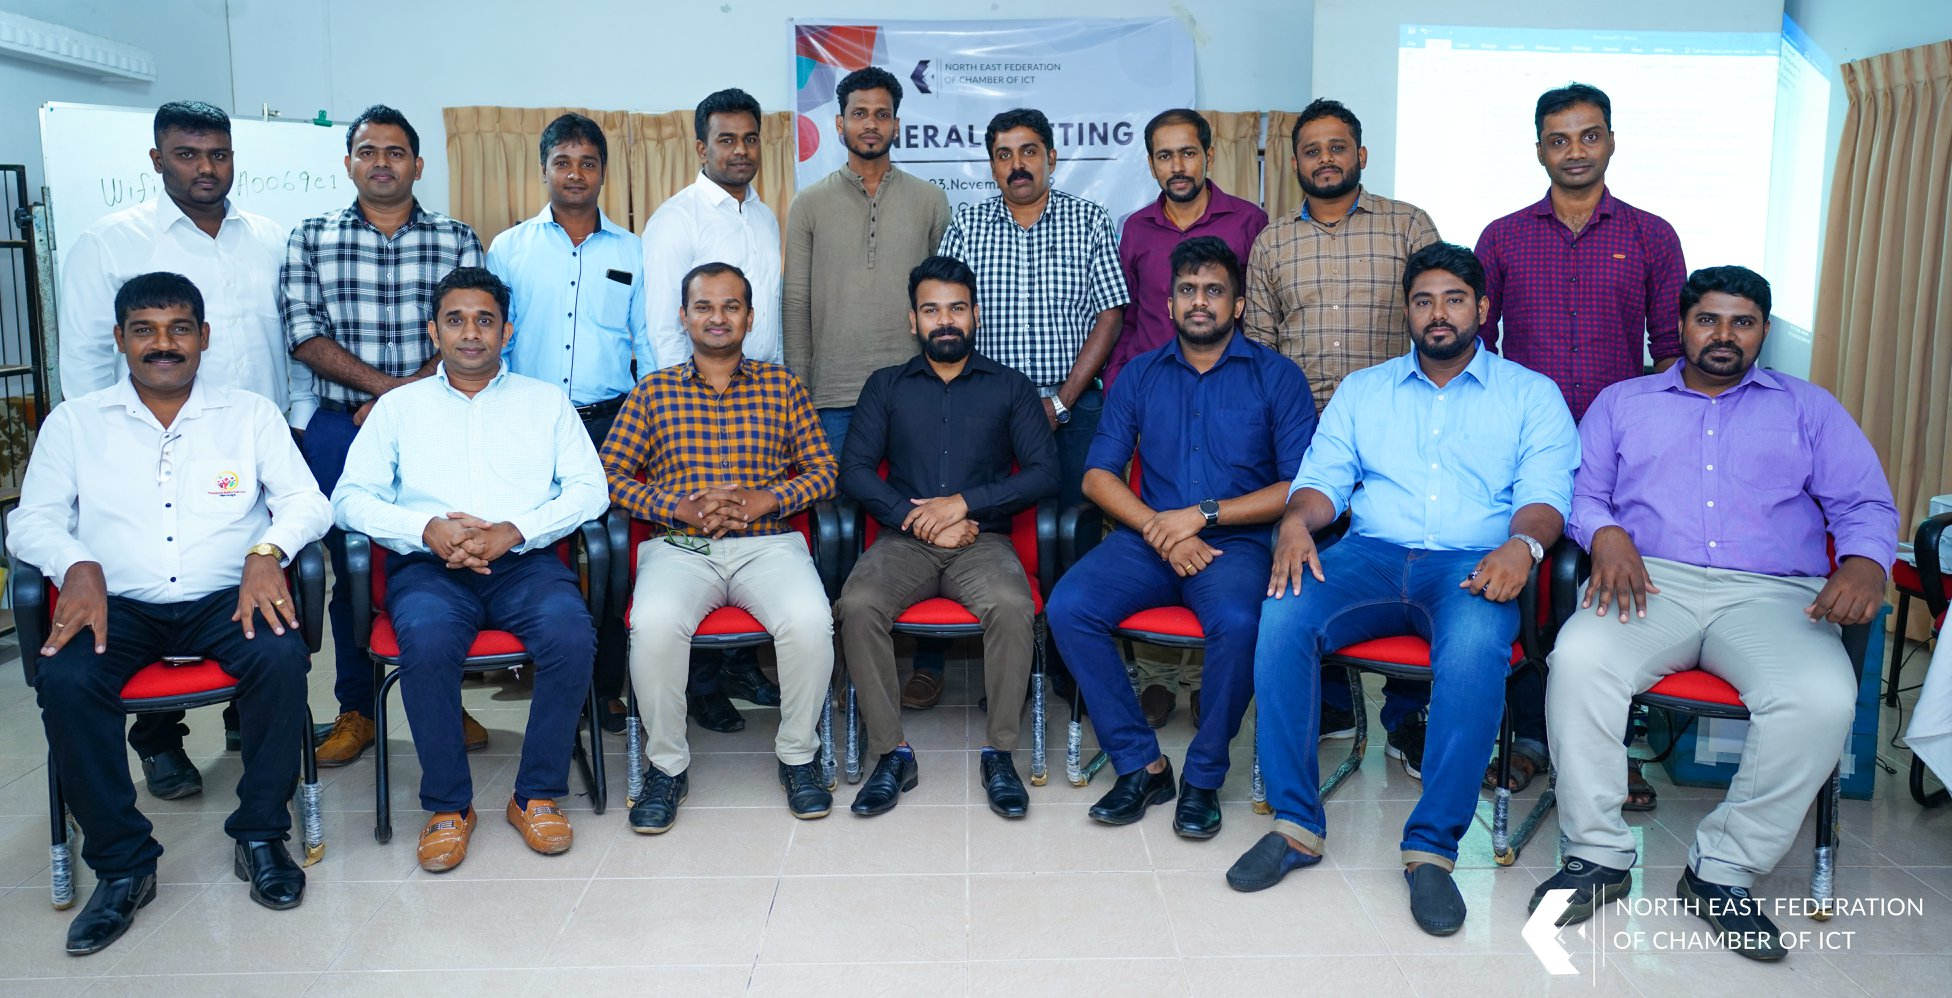 The Fifth General Meeting of North East Federation of Chamber of ICT 1